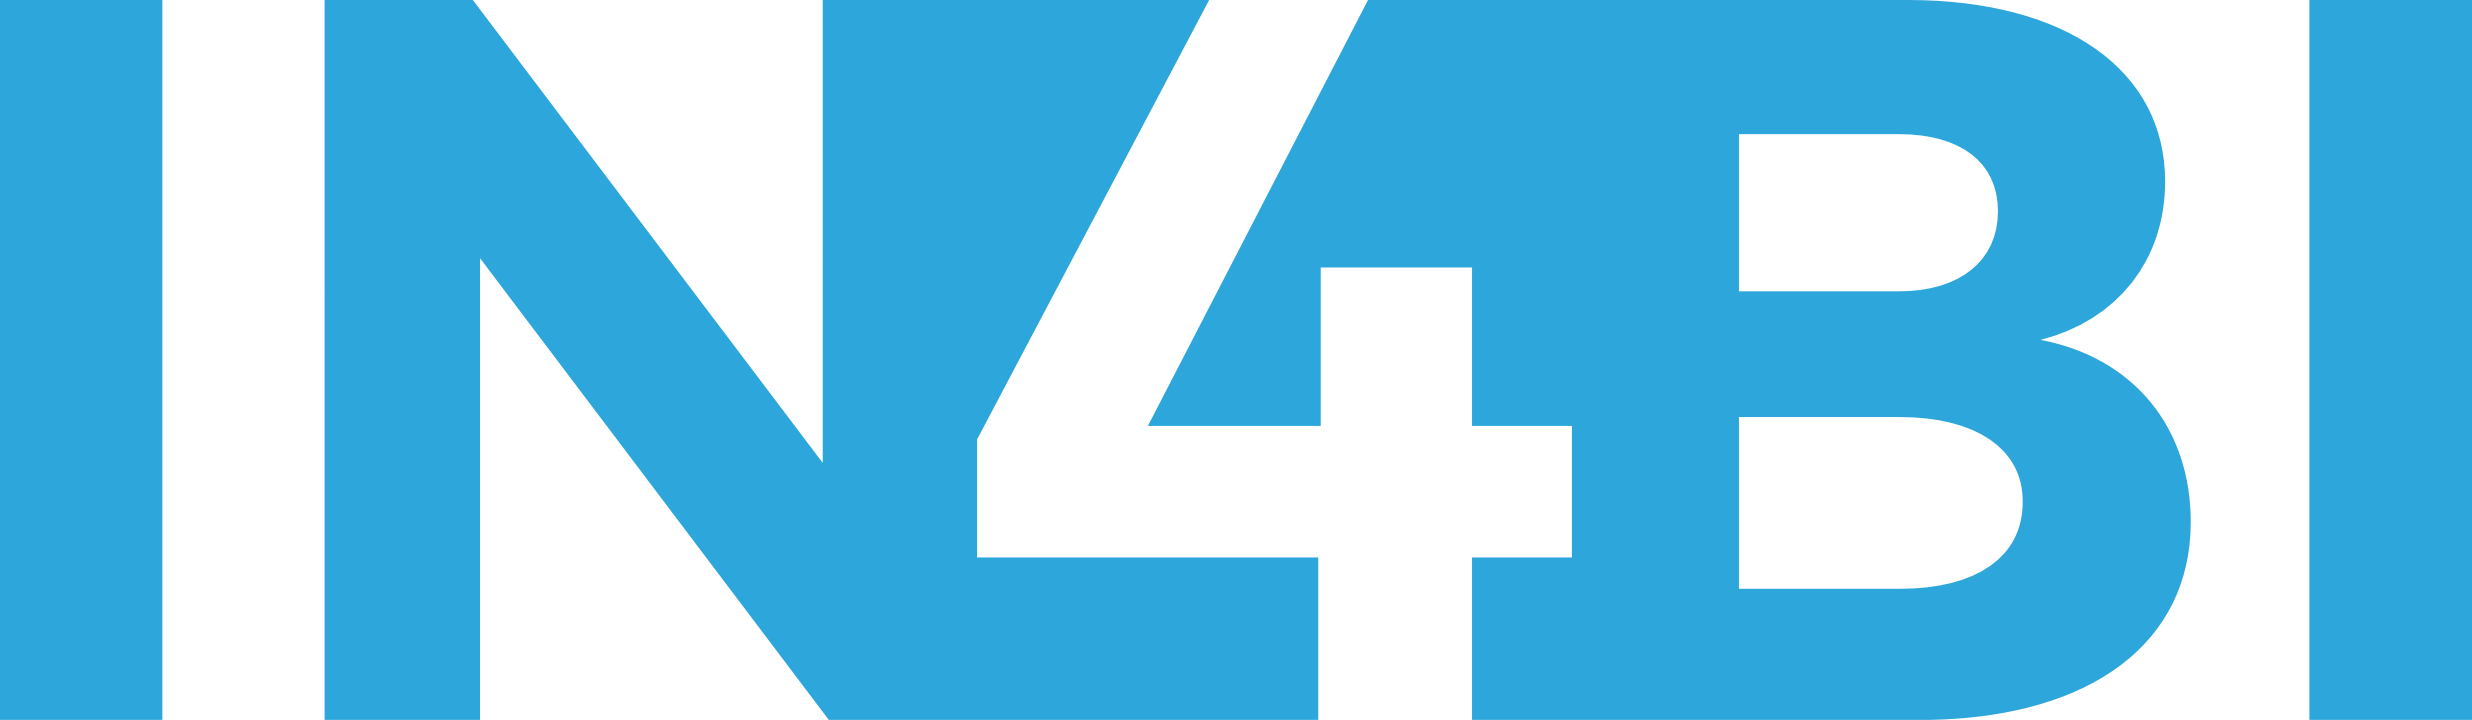 in4bi-logo-blue-single